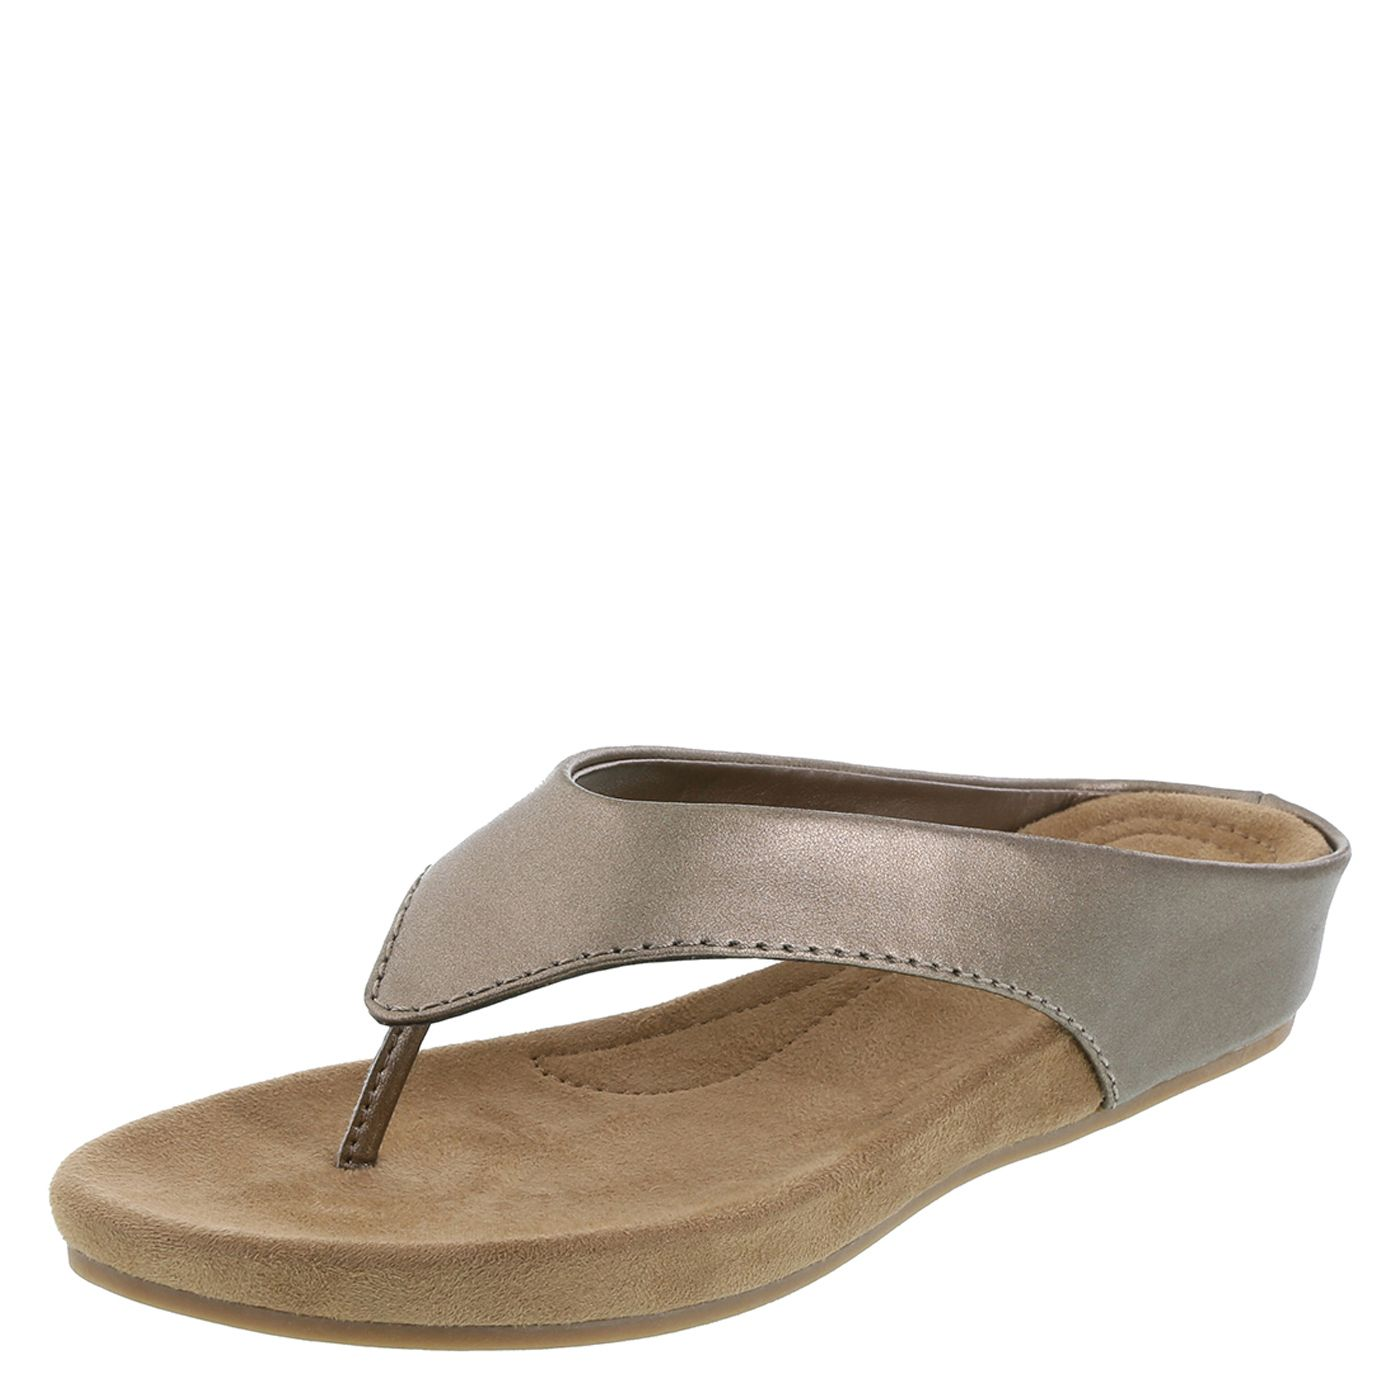 Black sandals at payless - Easygoing Low Wedge Sandal For A Casual Look Payless Shoesource